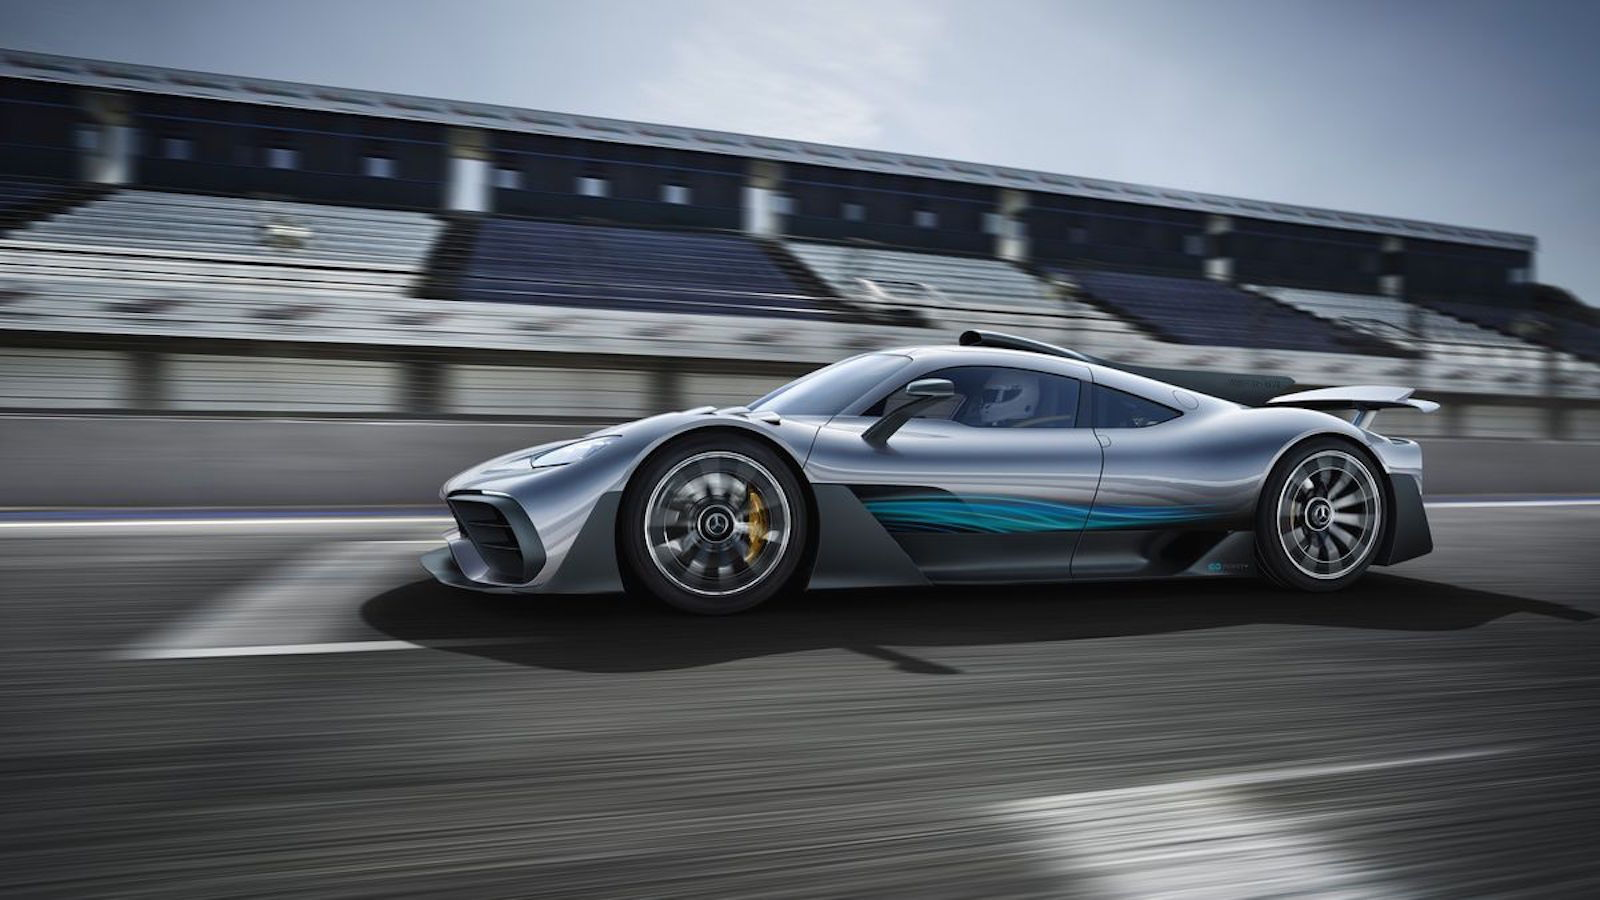 5 Insanely Fast Mercedes You Won't Believe